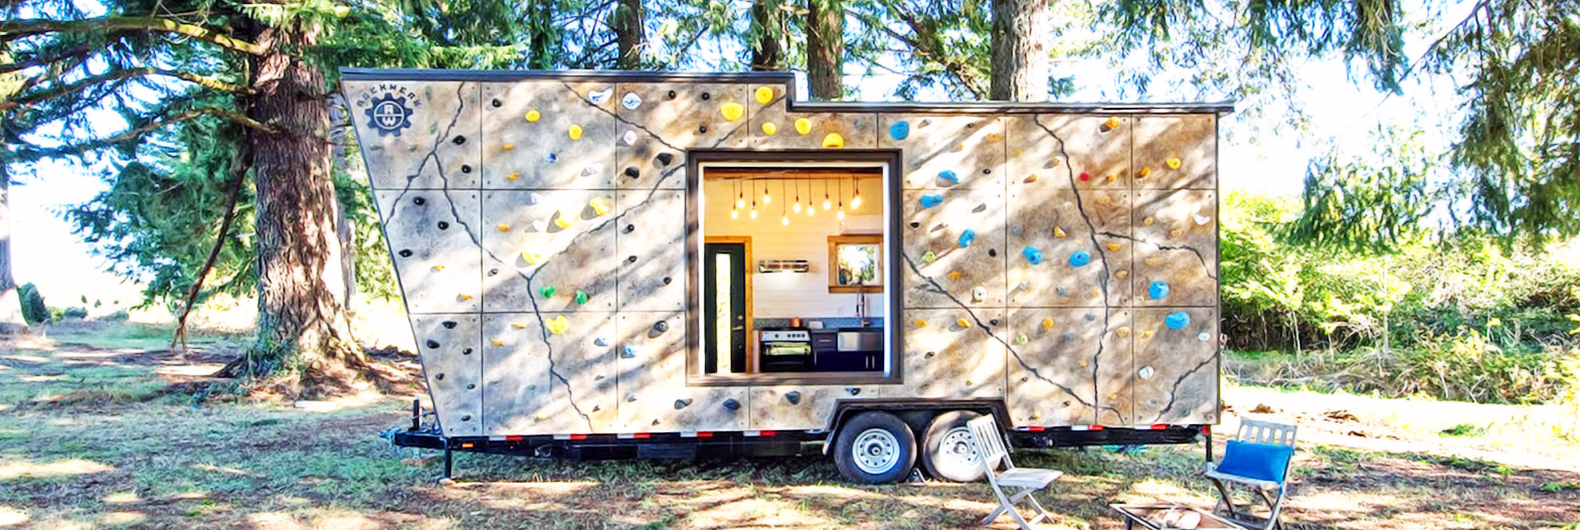 The sapphire house from tiny heirloom tiny house town - Rock Climbing Walls Cover This Tiny Home Built For Adventure Lovers